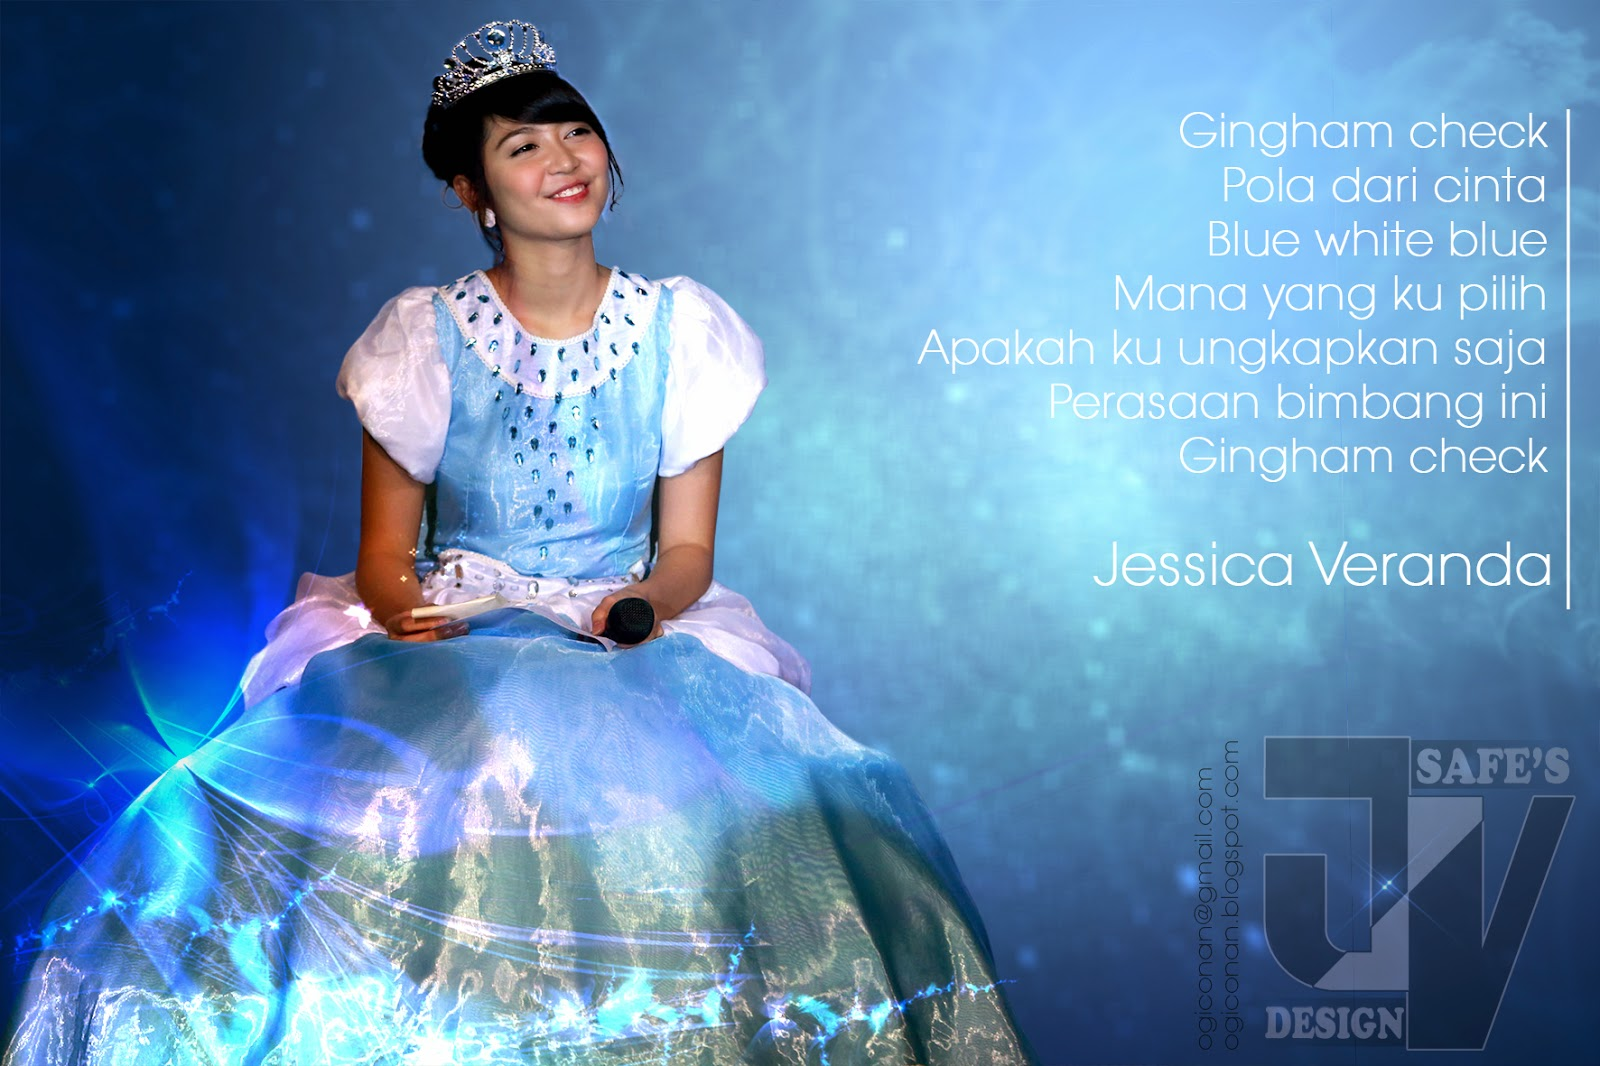 Veranda gingham check foto jkt48 Edit